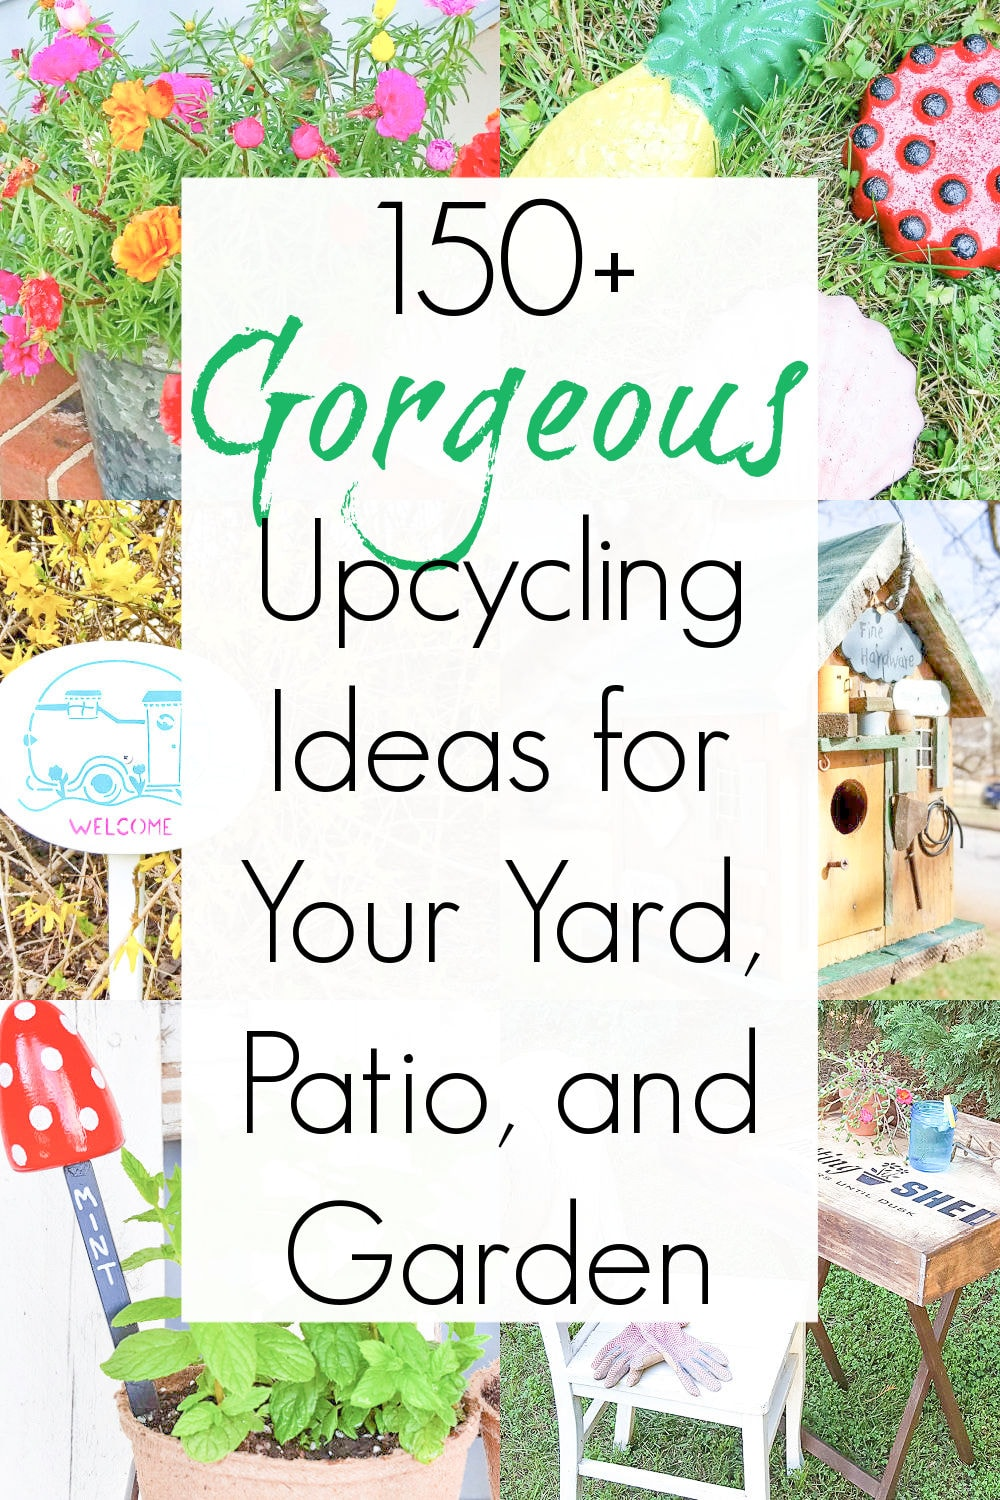 repurpose ideas and garden projects